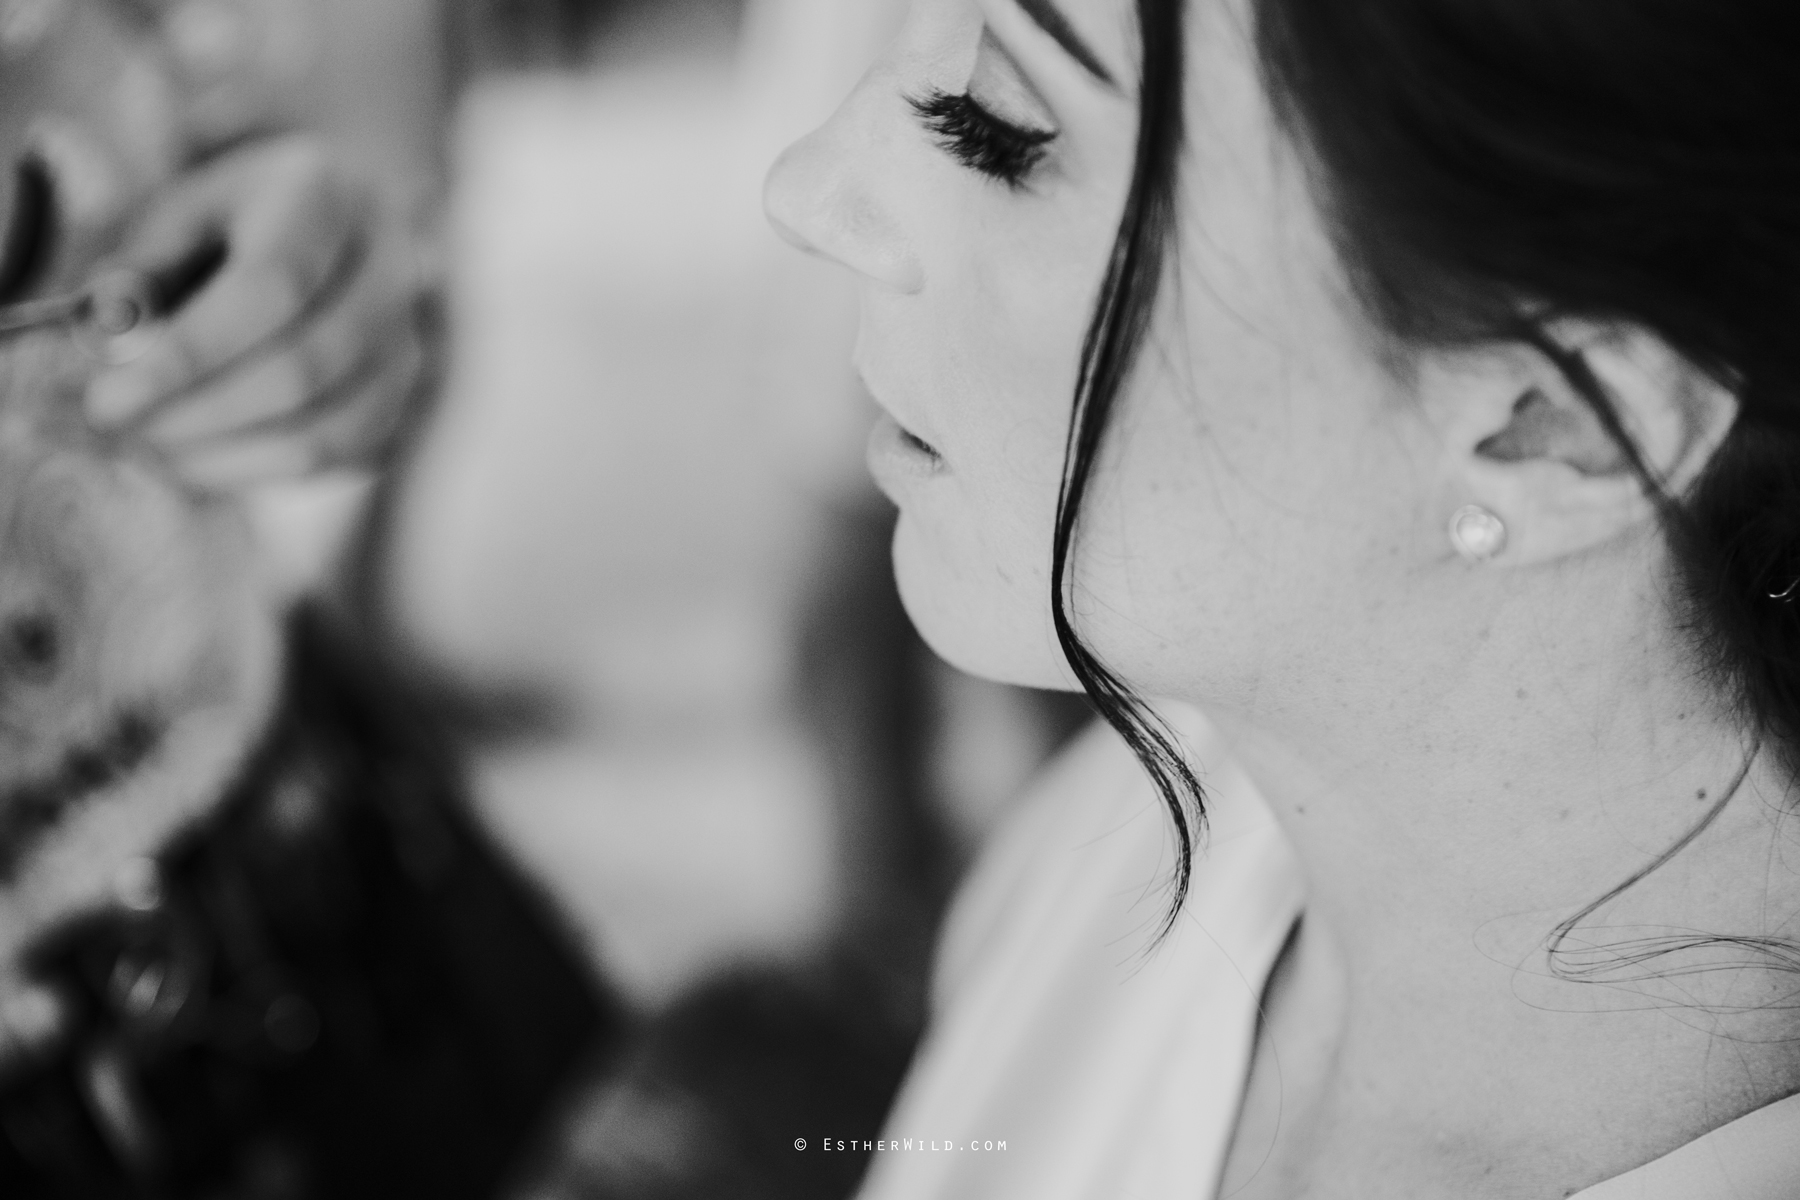 Wootton_Wedding_Copyright_Esther_Wild_Photographer_IMG_0267-2.jpg